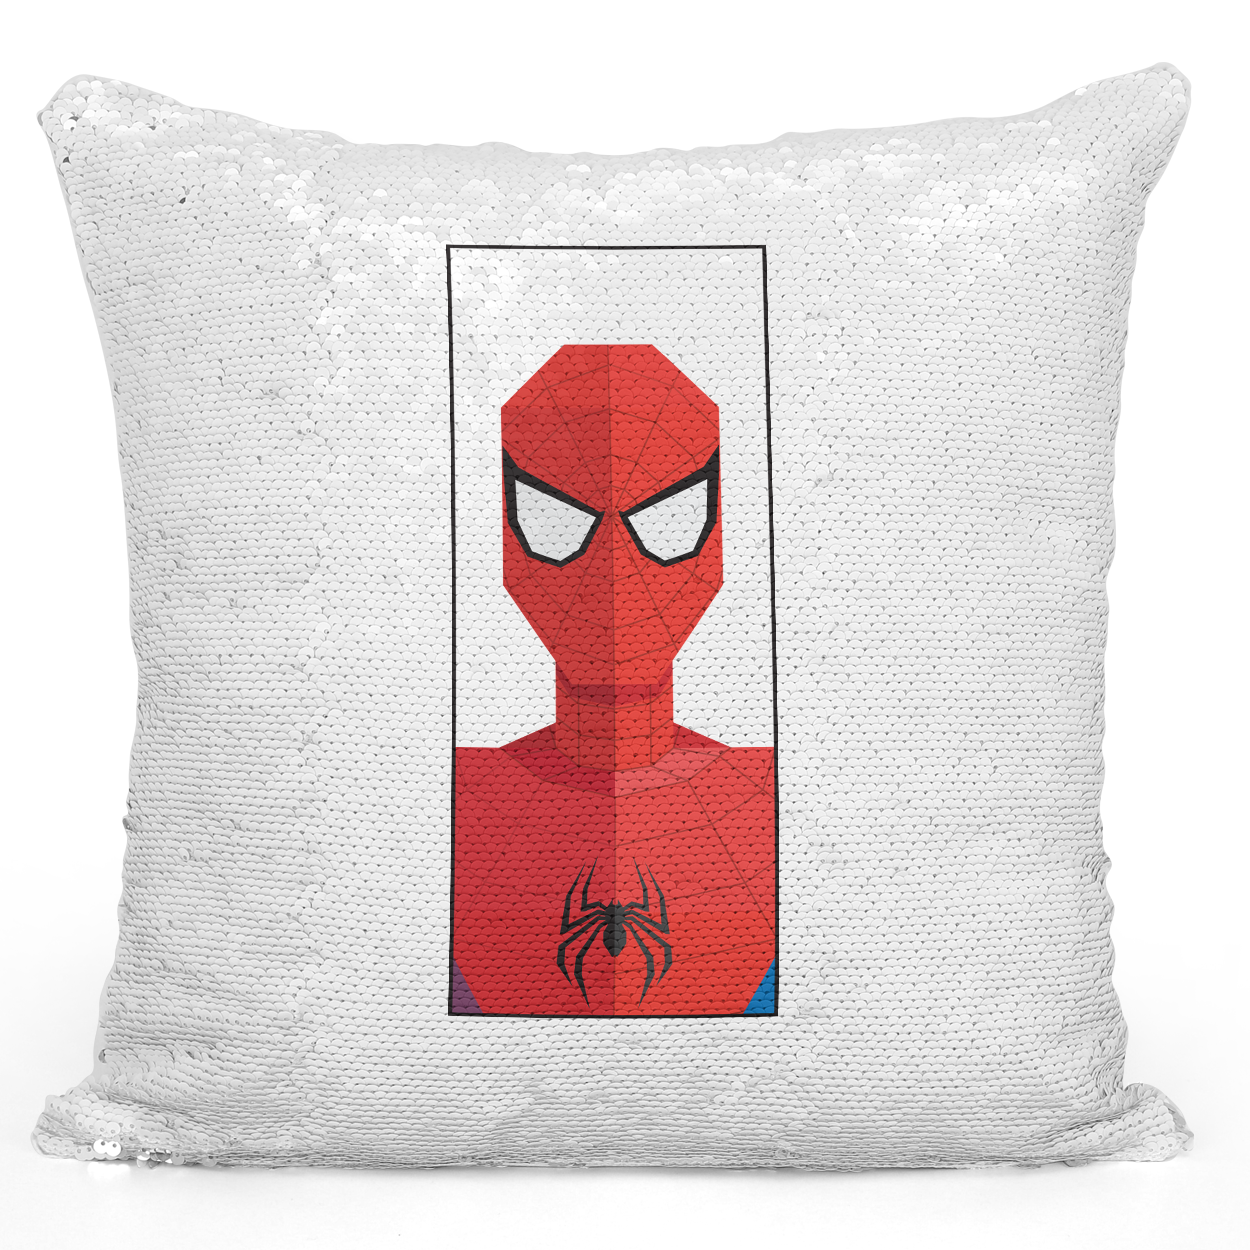 Sequin Pillow Magic Mermaid Throw Pillow Spider Man Super Hero Pillow - Durable White 16 x 16 inch Square Modern Livingroom Decorative Pillow Loud Universe